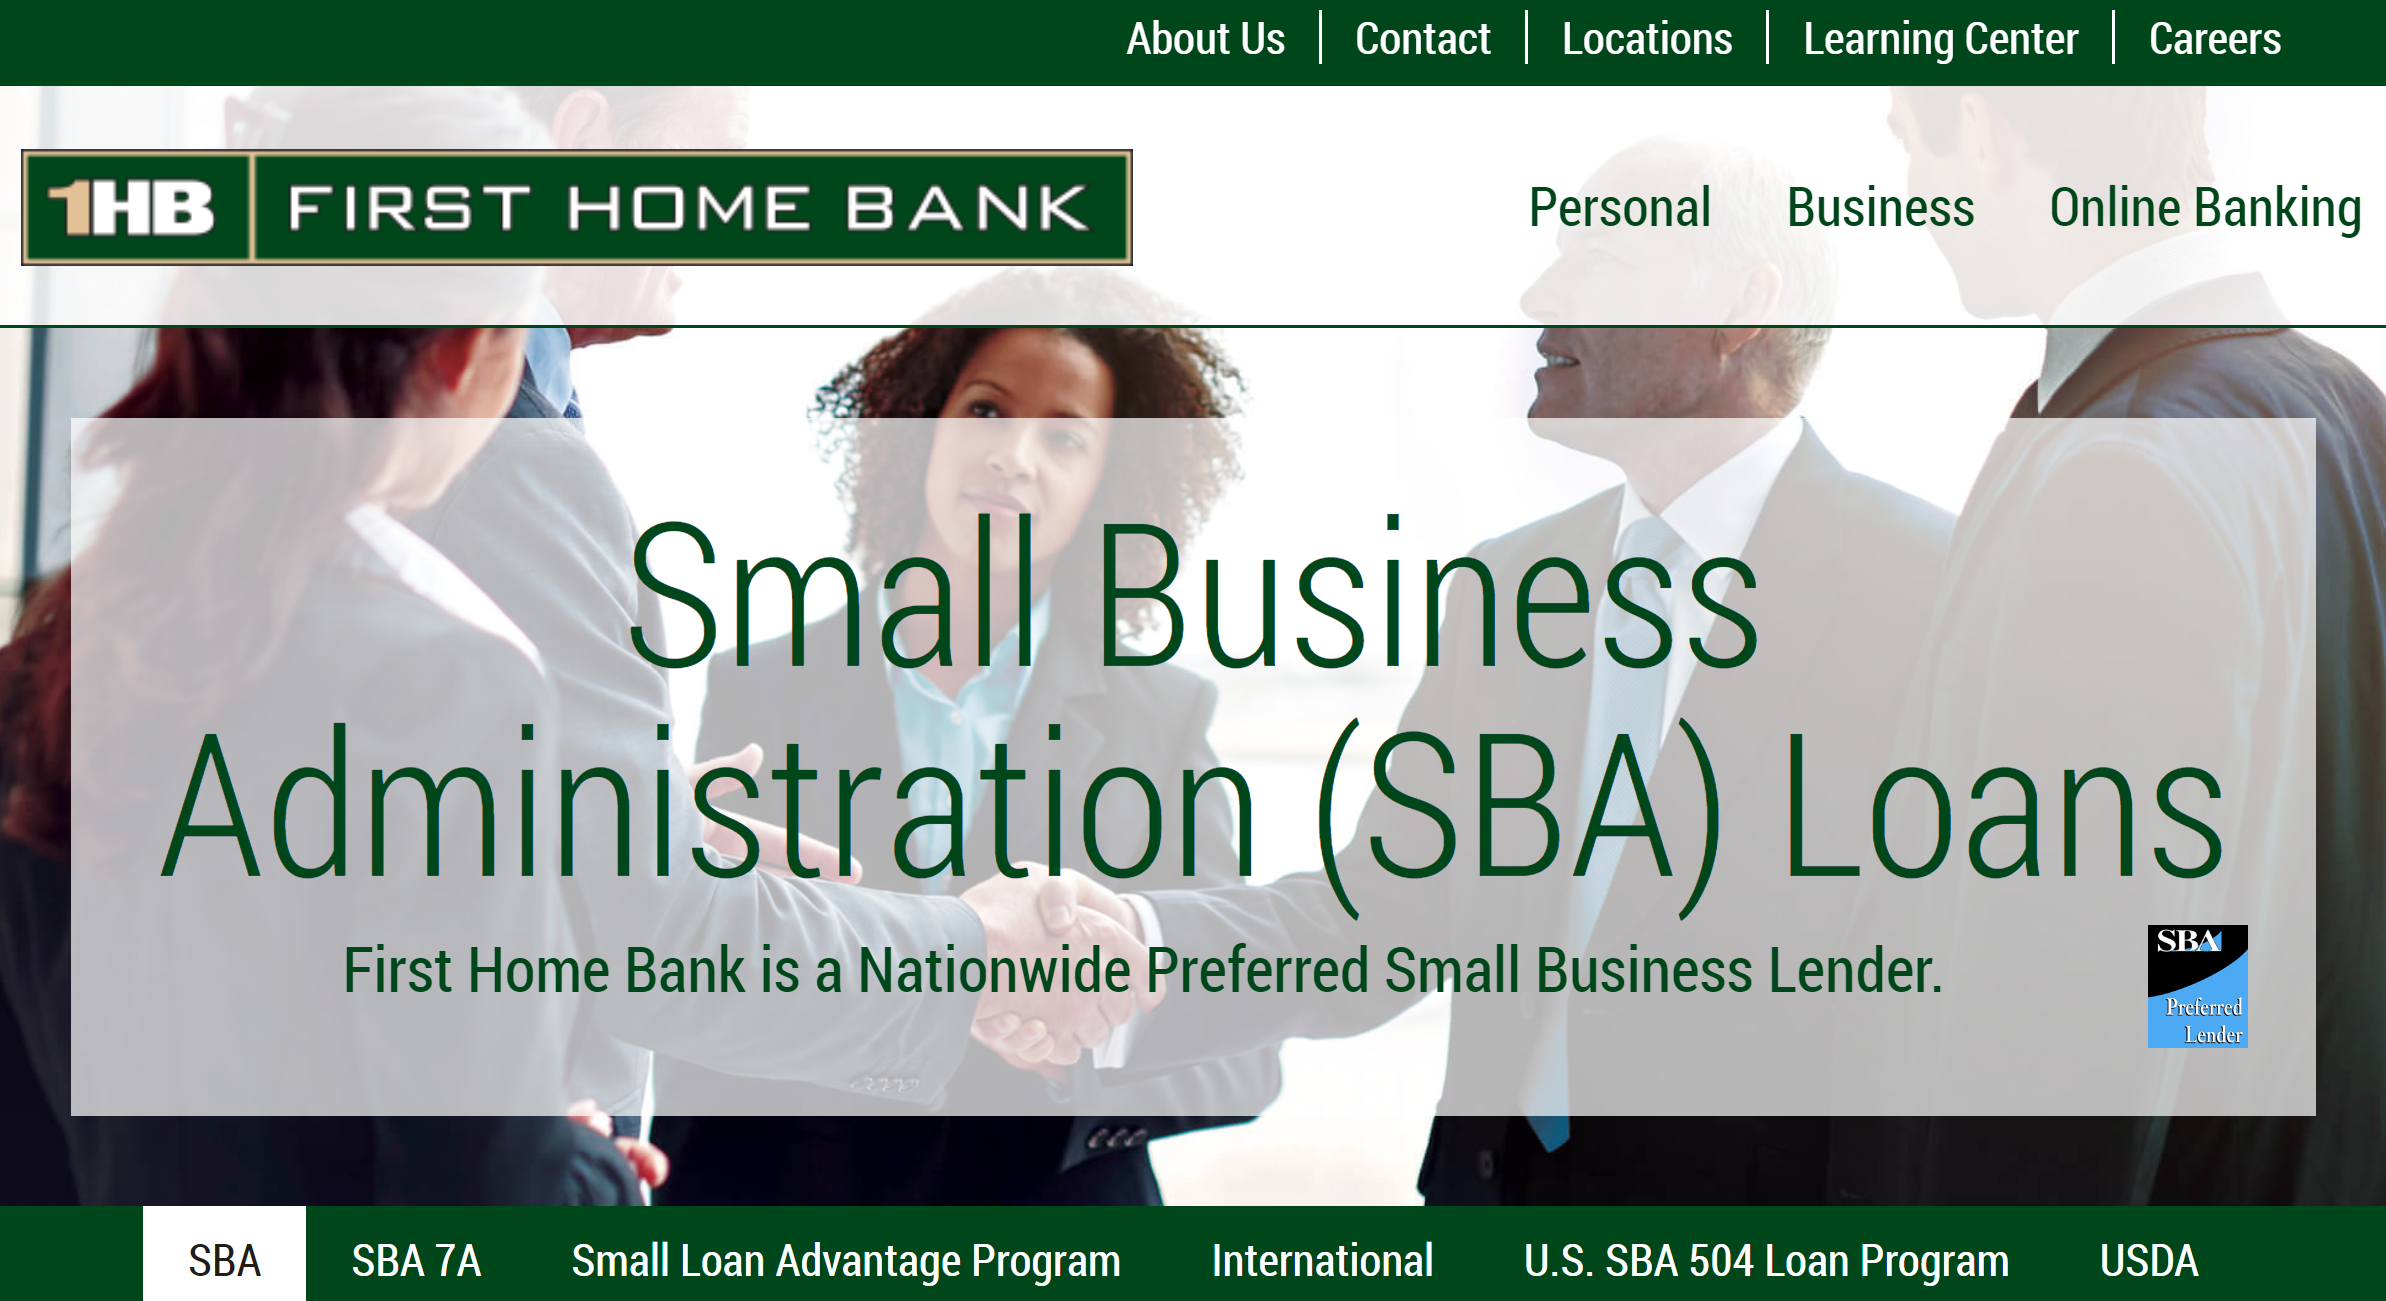 First Home Bank Best Bank for Small Business for SBA Loans